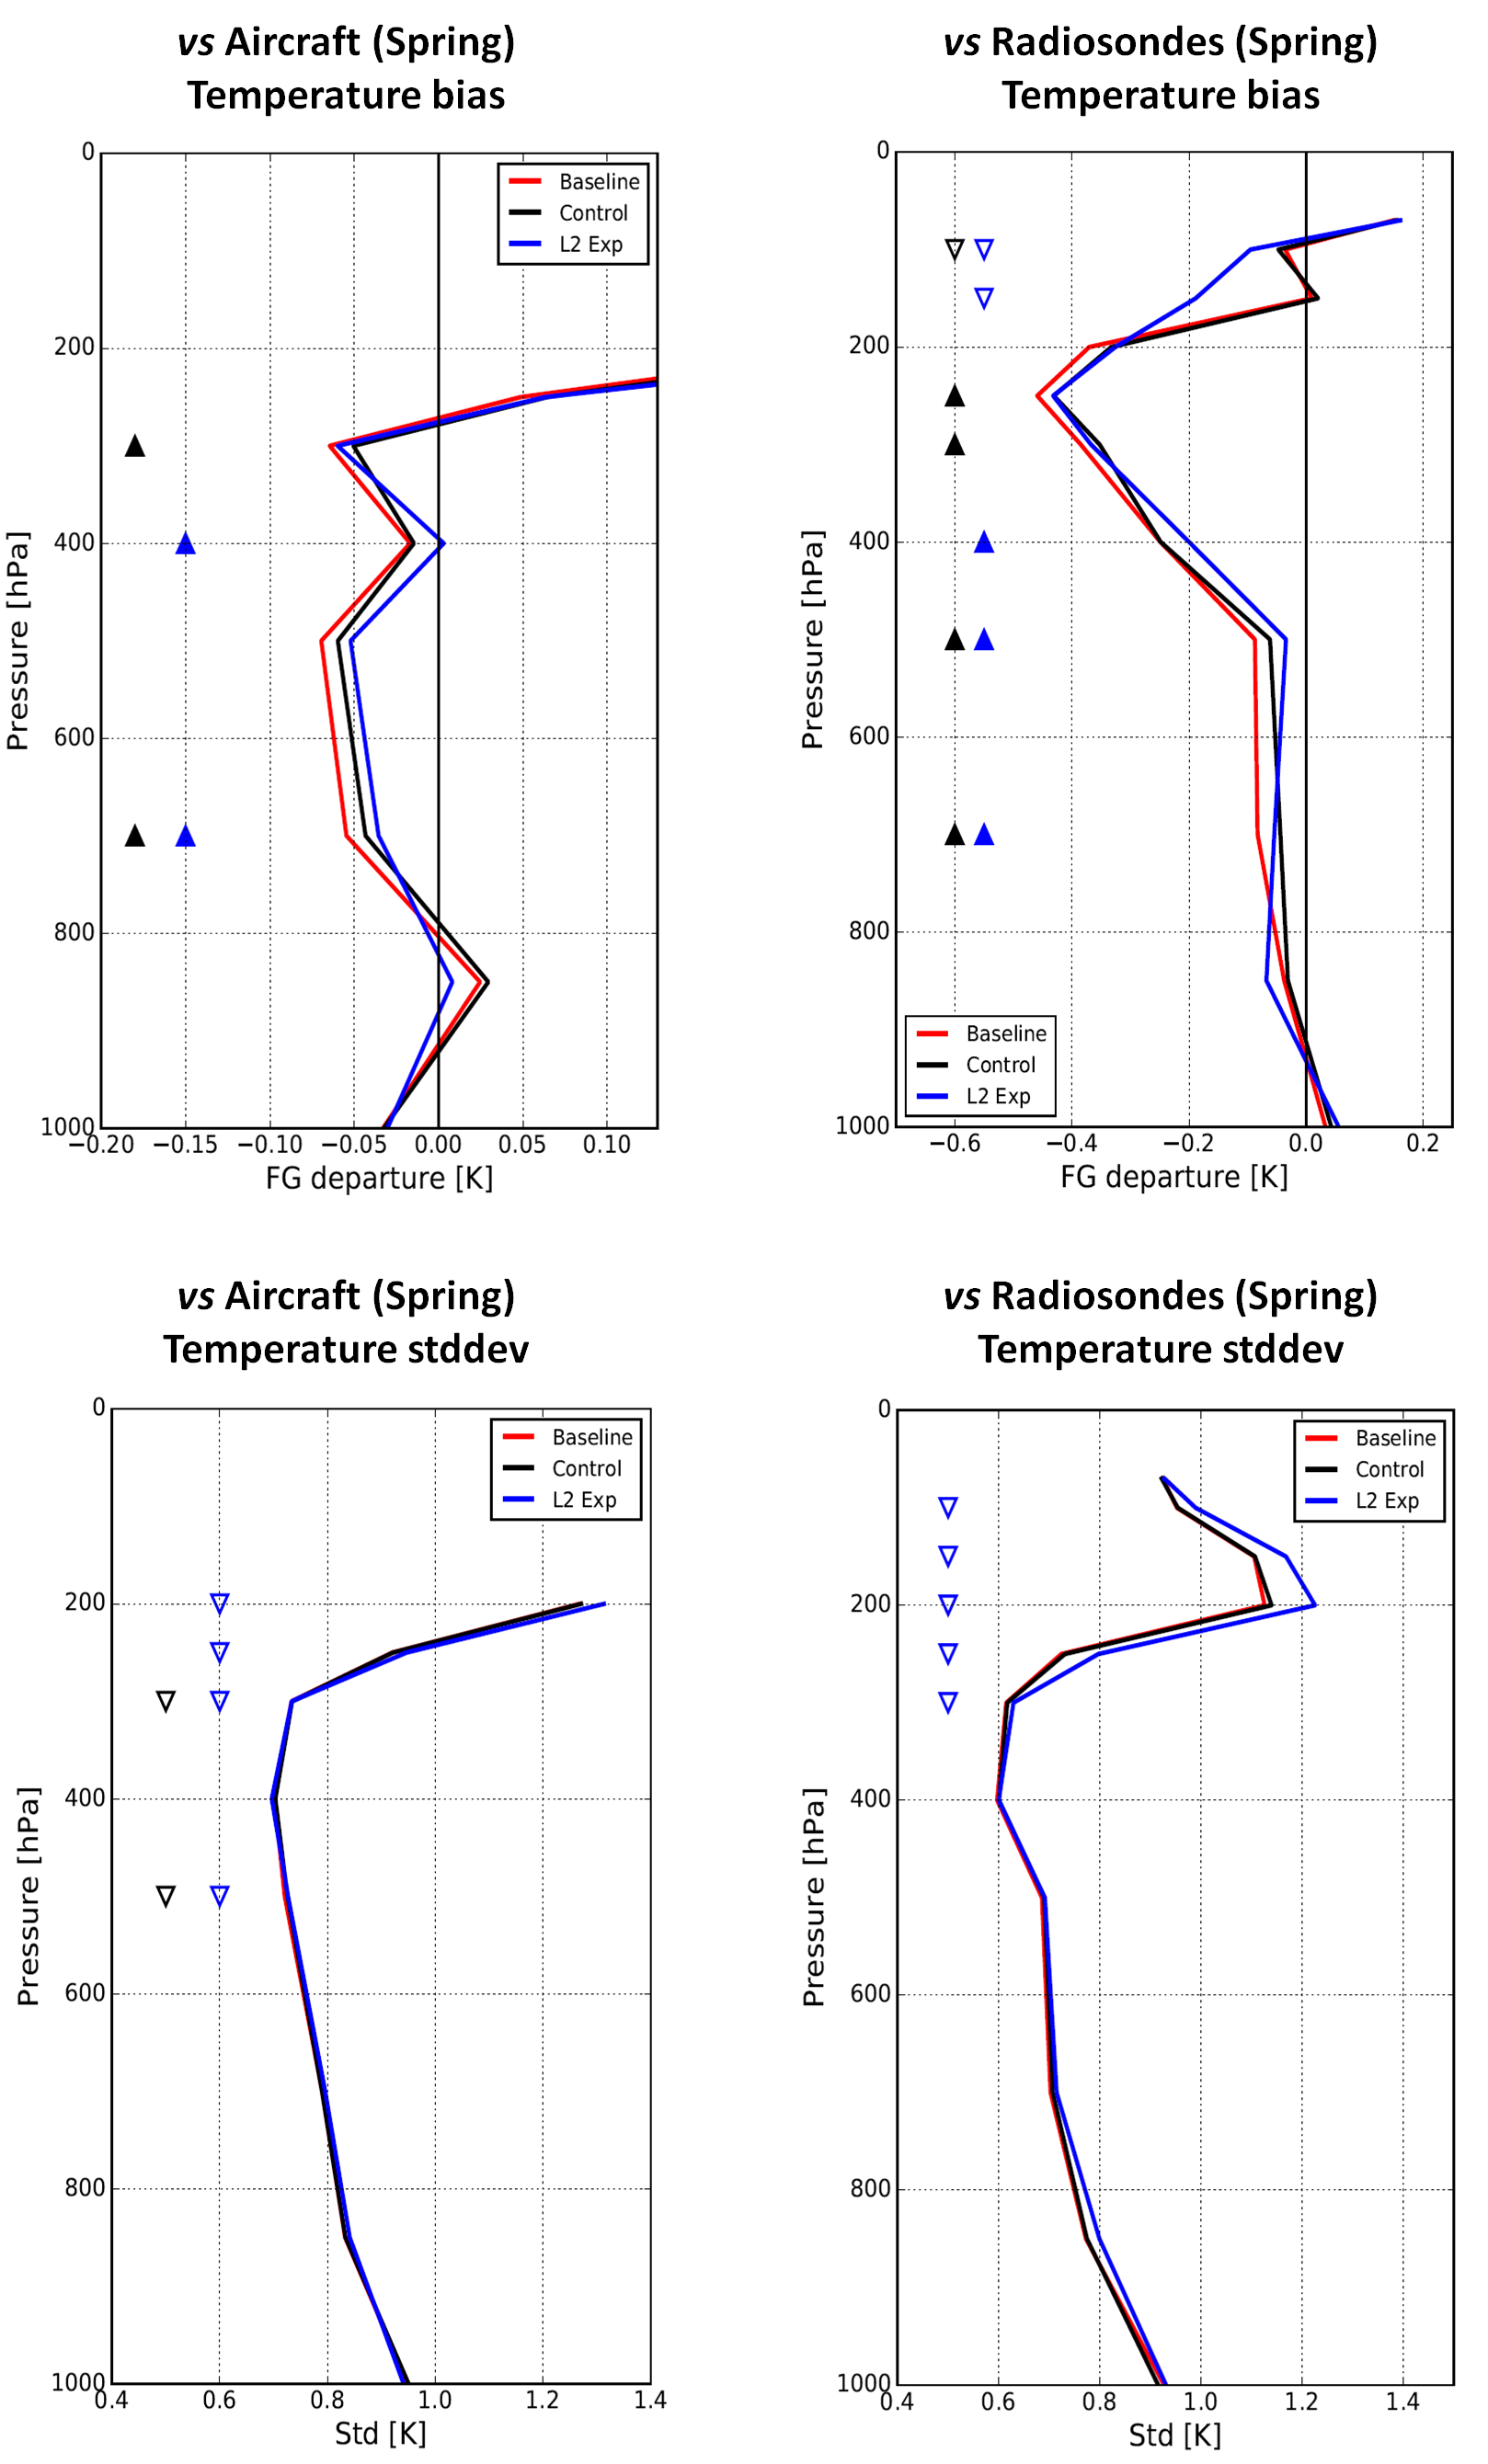 Temperature forecasts vs Aircraft (left) and Radiosonde (right) measurements, bias (top) and standard deviation (bottom) in Spring 2018. Red: Baseline, Black: Control w. radiance, Blue: L2 experiments